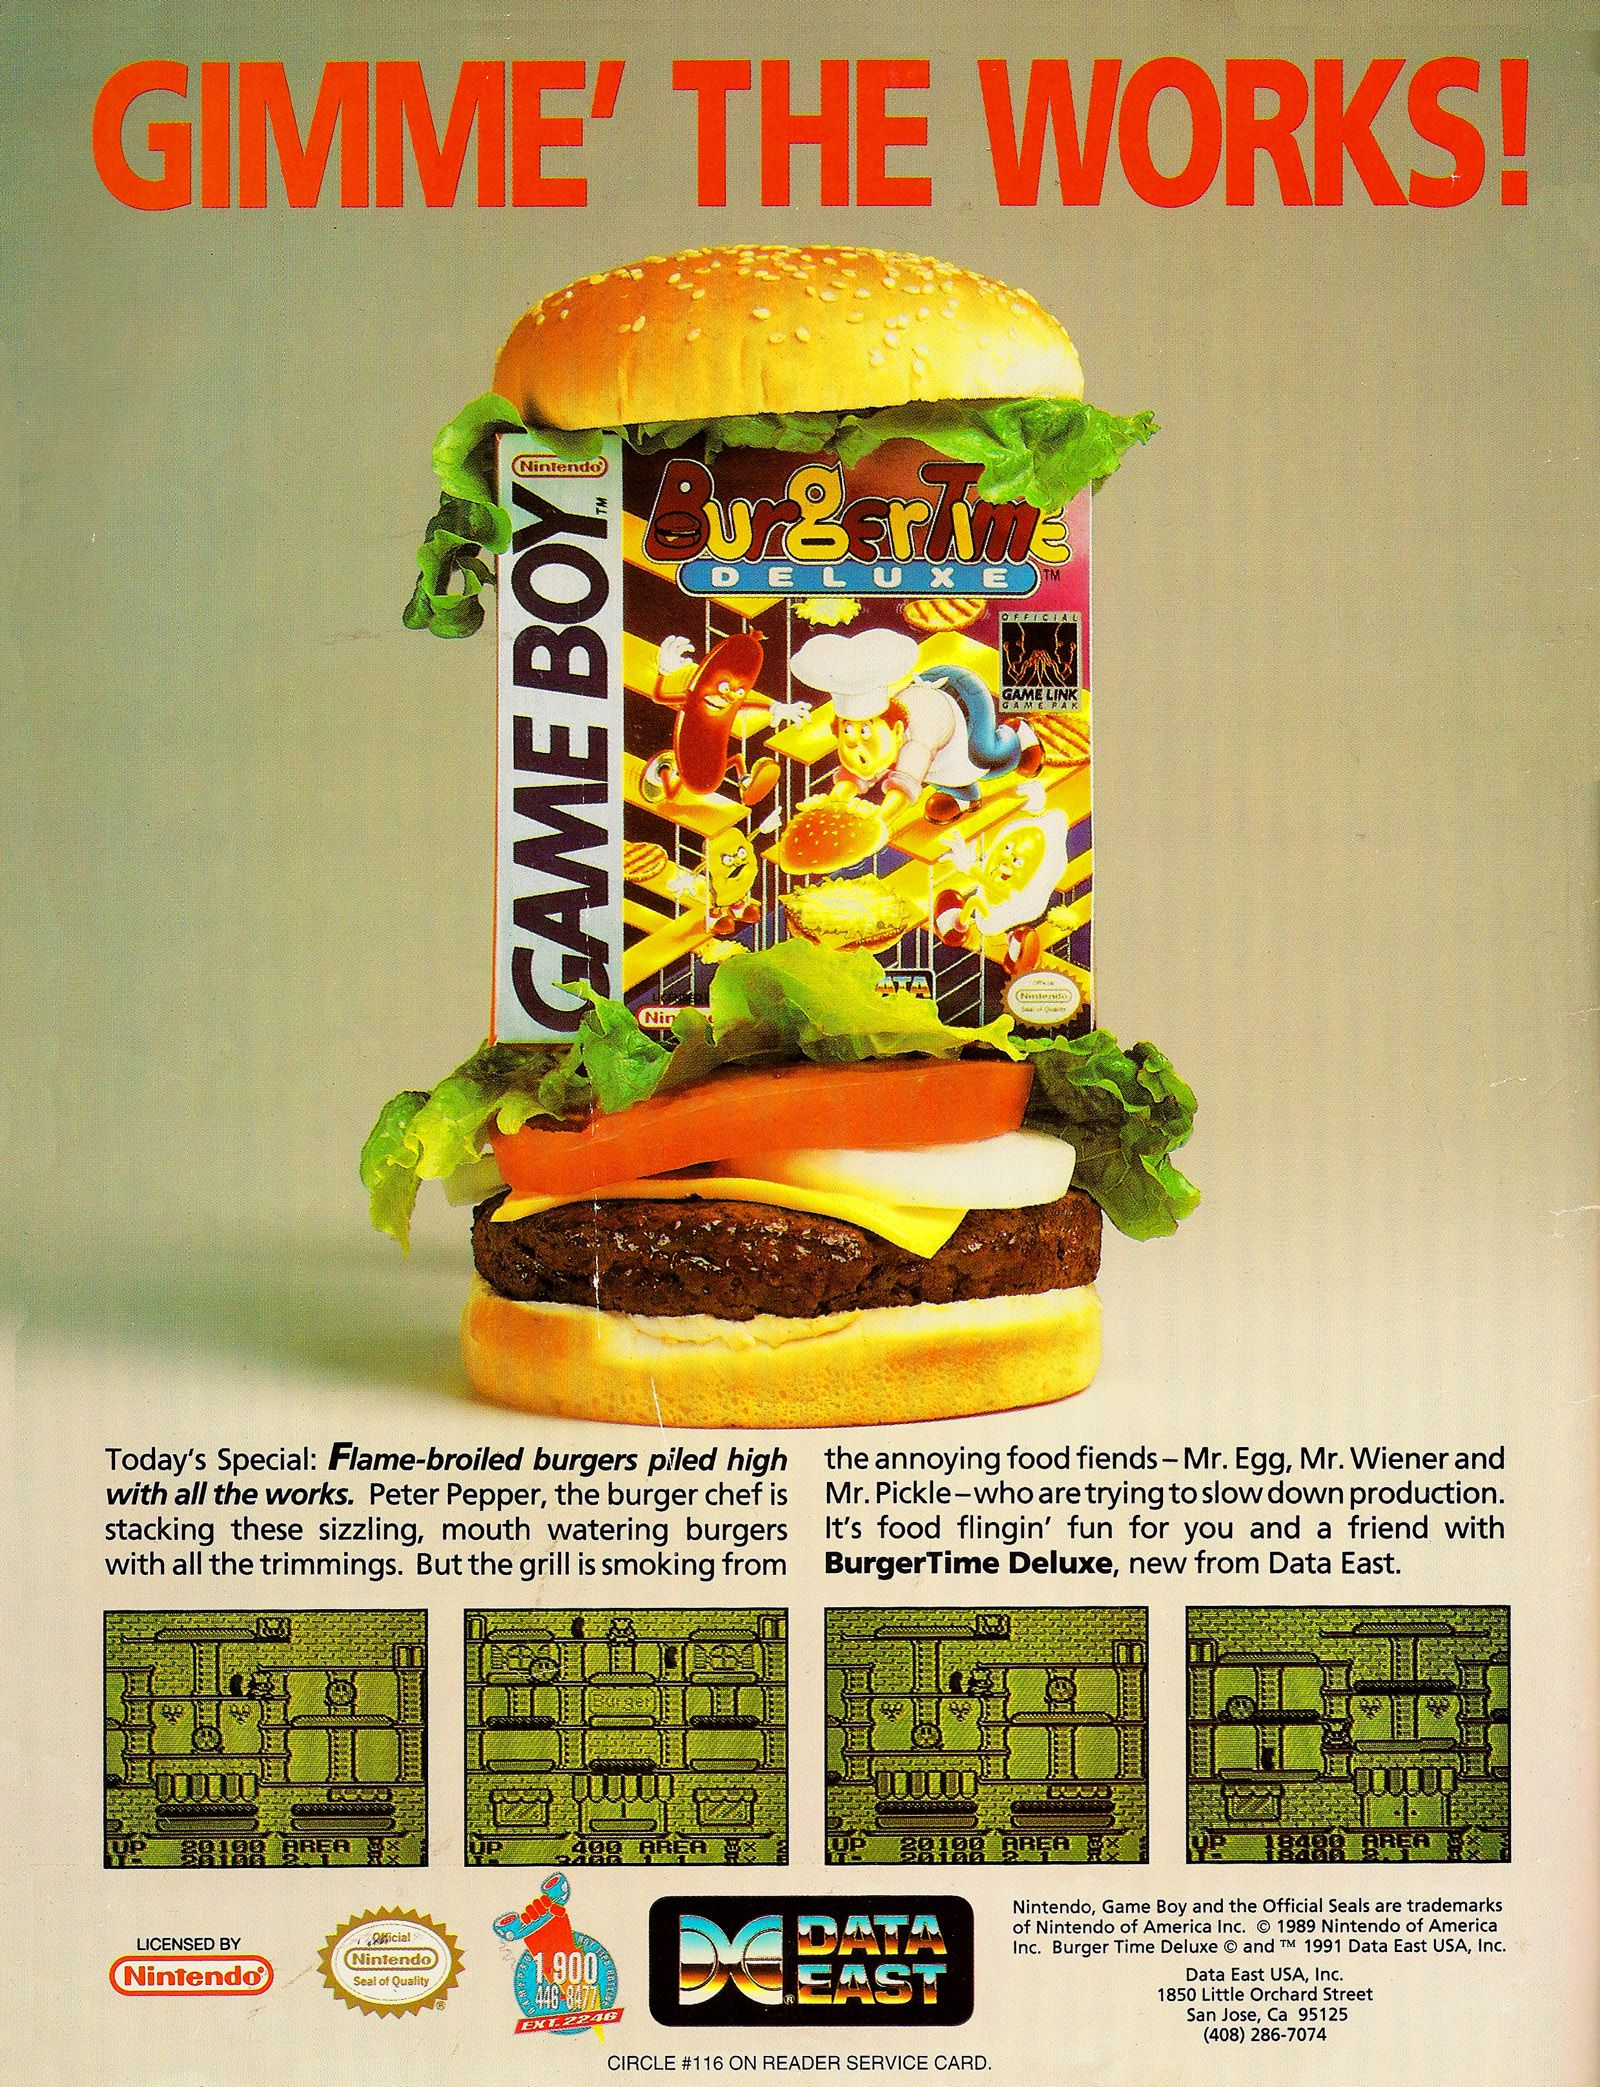 Gameboy color ad - Burger Time Deluxe Nintendo Gameboy Ad Videogames Ads Pinterest The O Jays Burgers And The Works